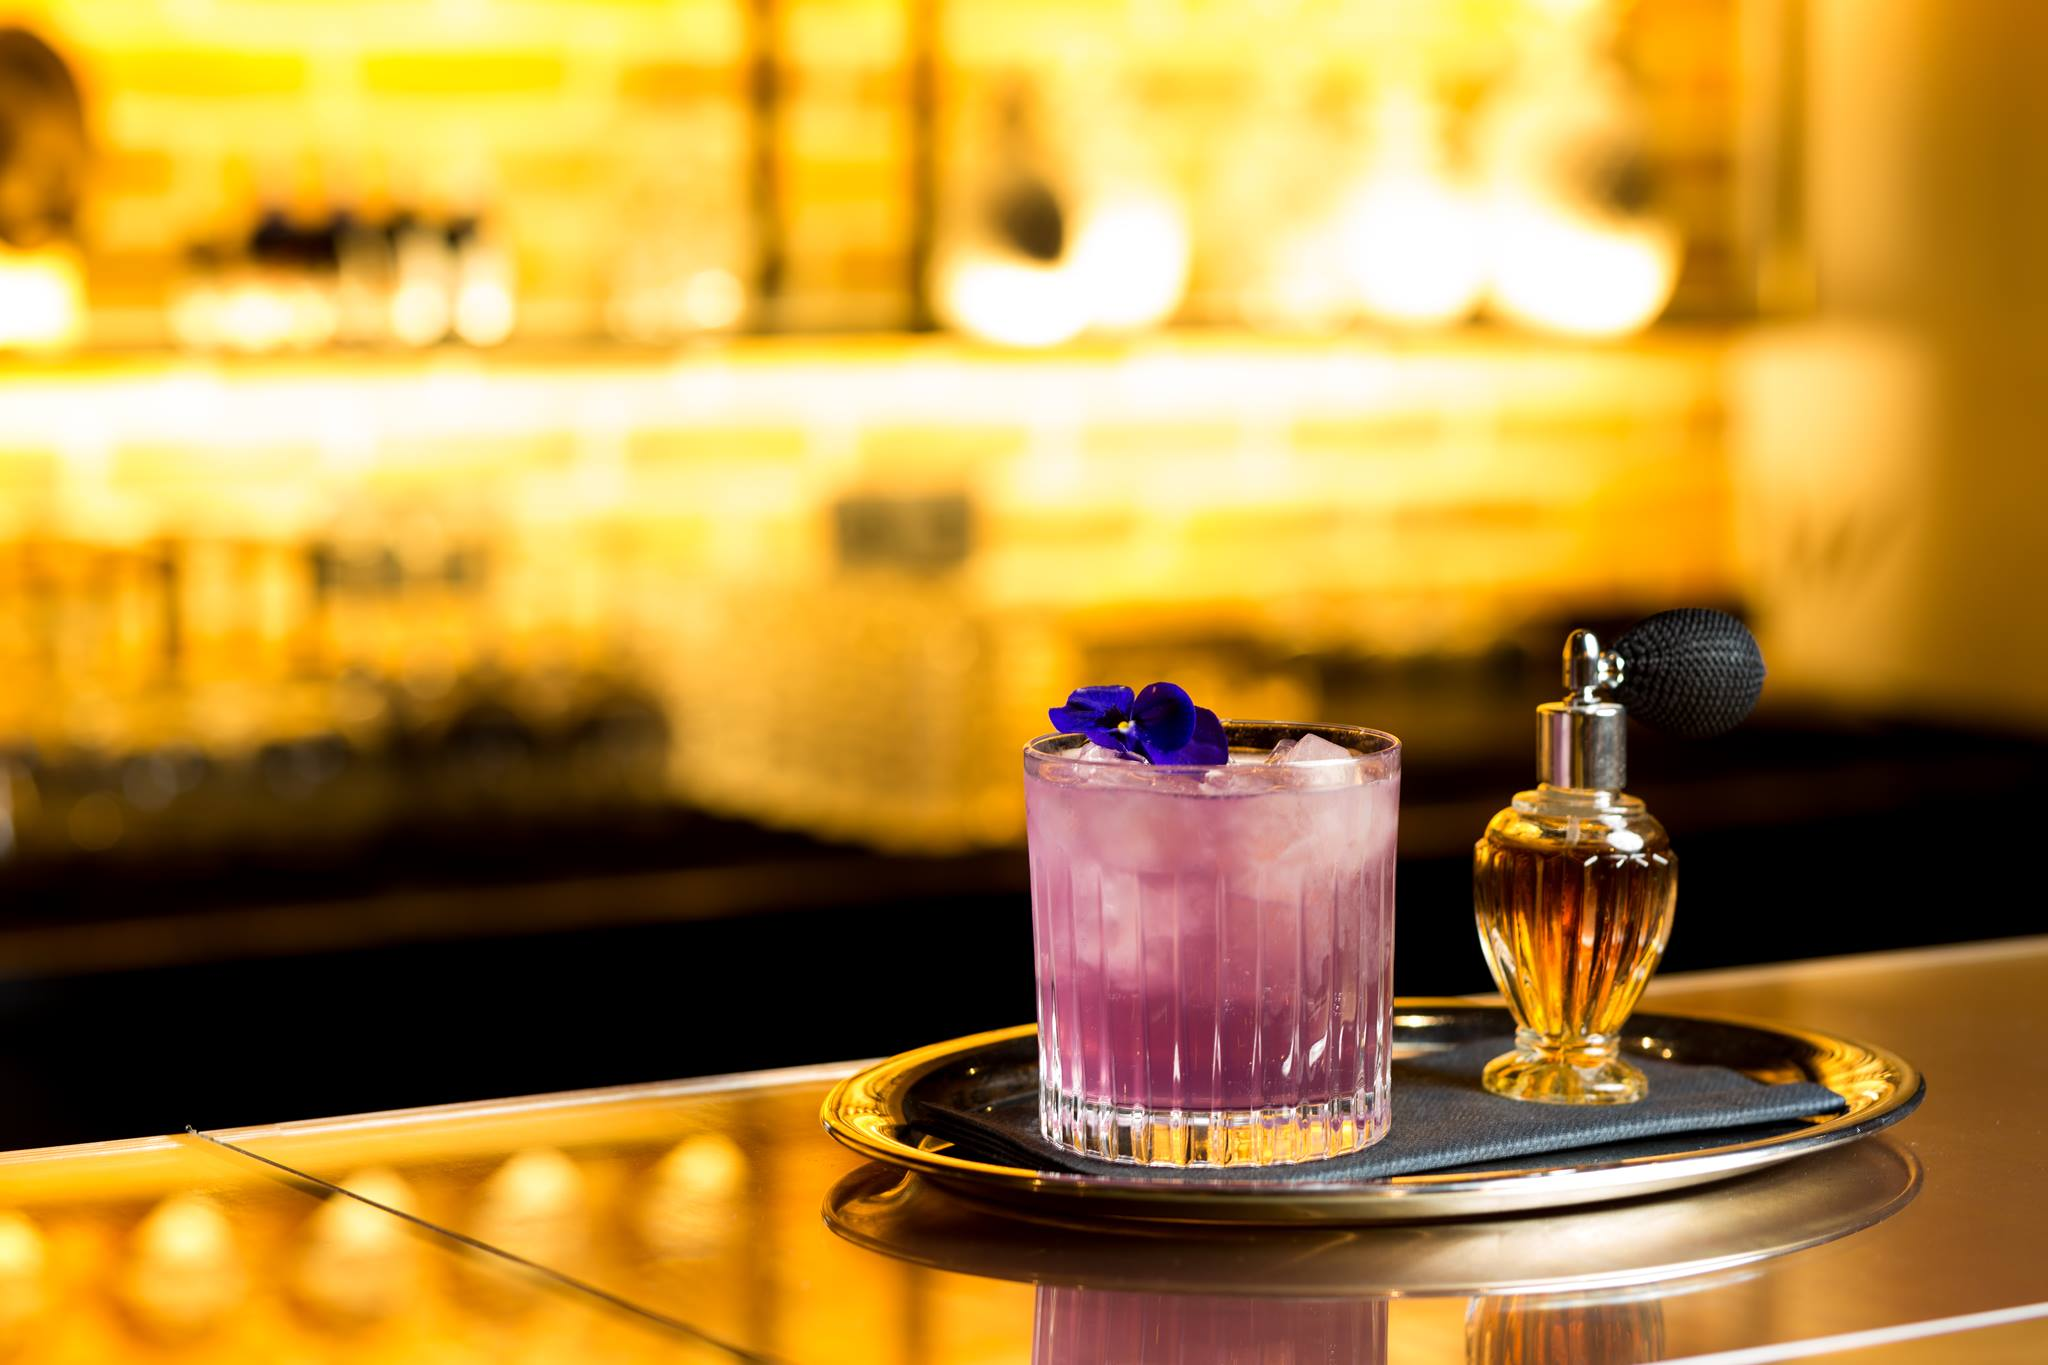 10-best-cocktail-bars-in-amsterdam-by-liquid-journalist-ingmar